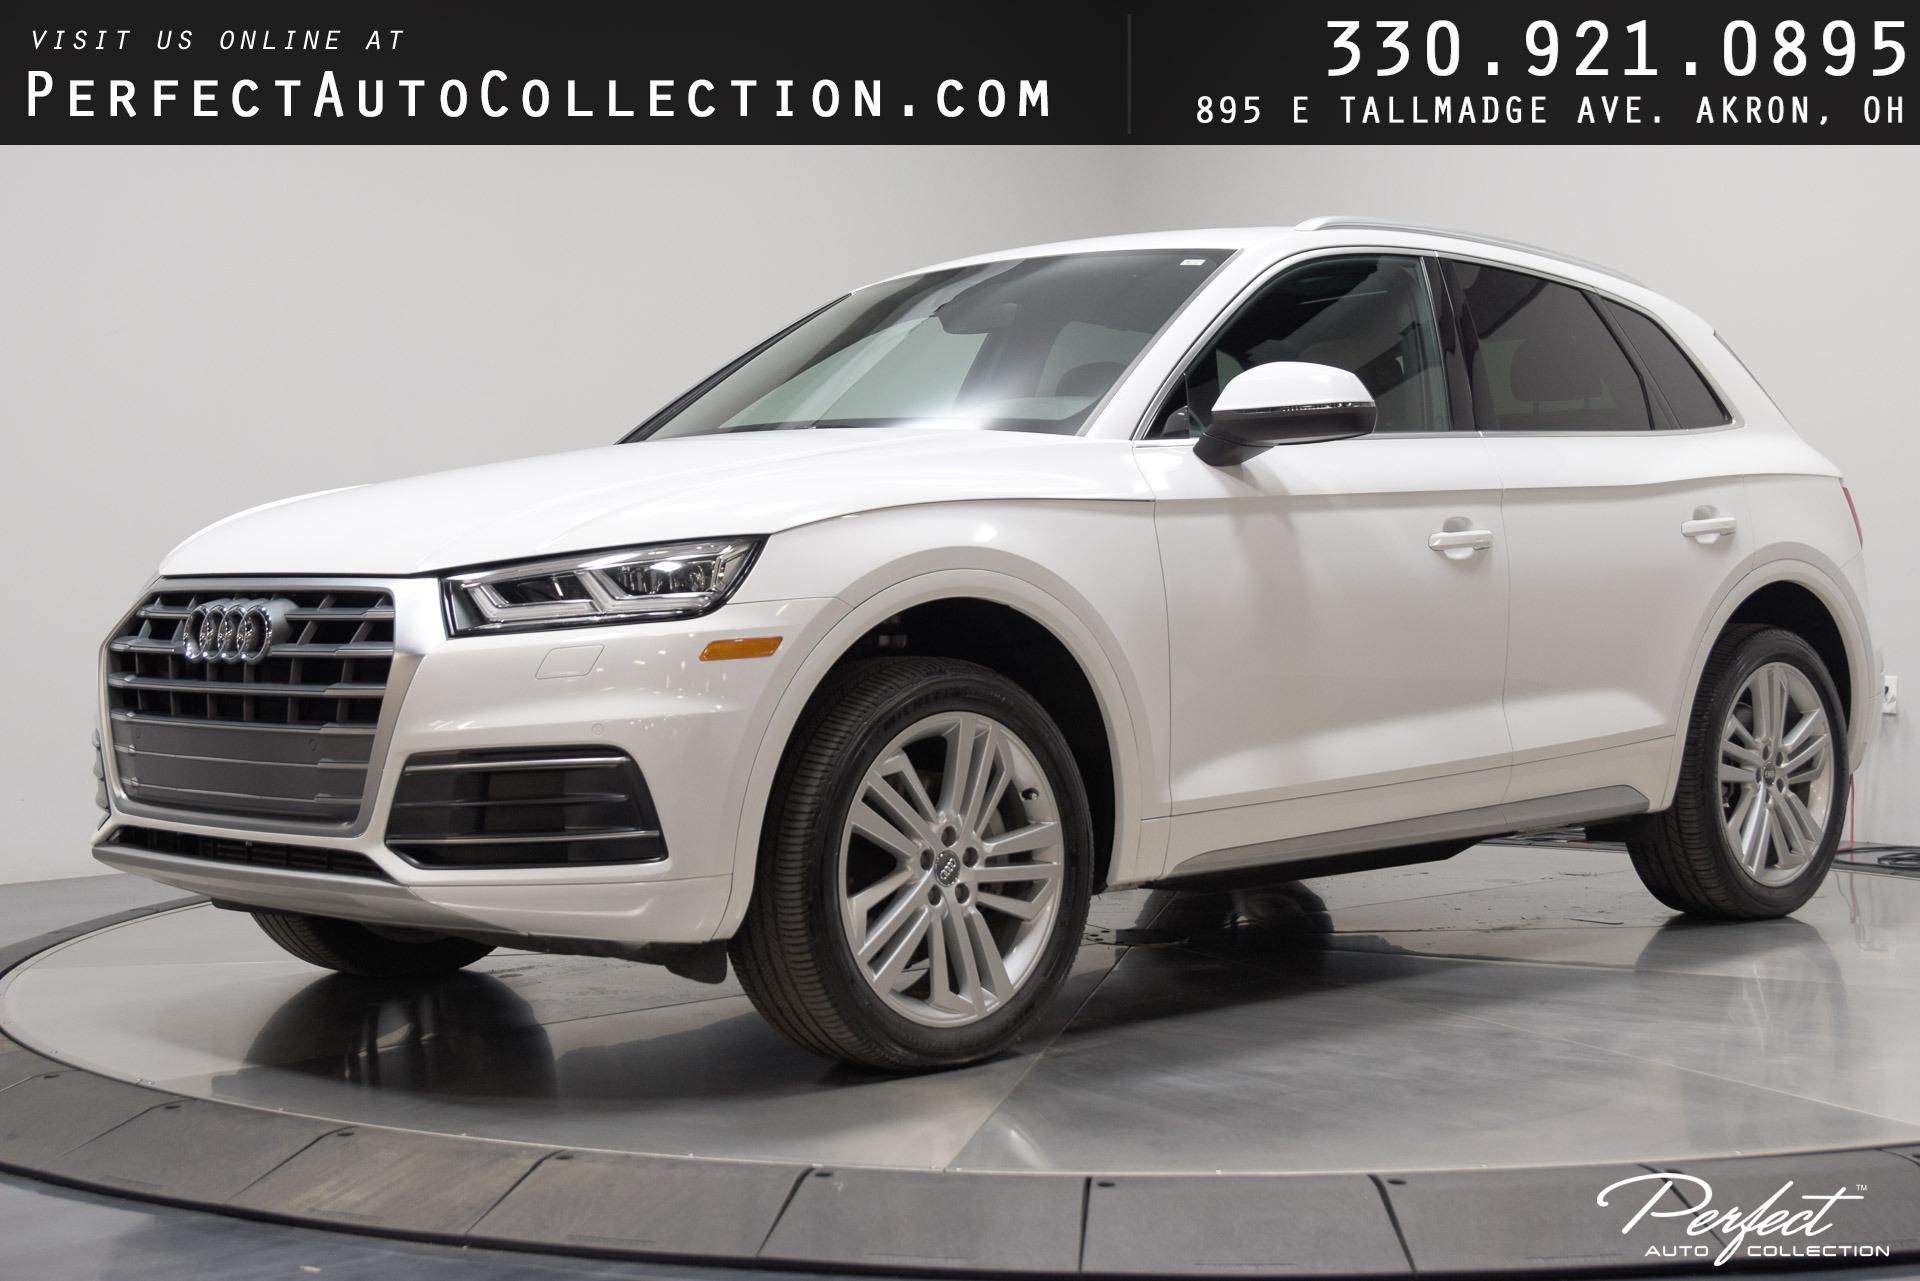 Used 2018 Audi Q5 2.0T quattro Premium Plus for sale $31,995 at Perfect Auto Collection in Akron OH 44310 1